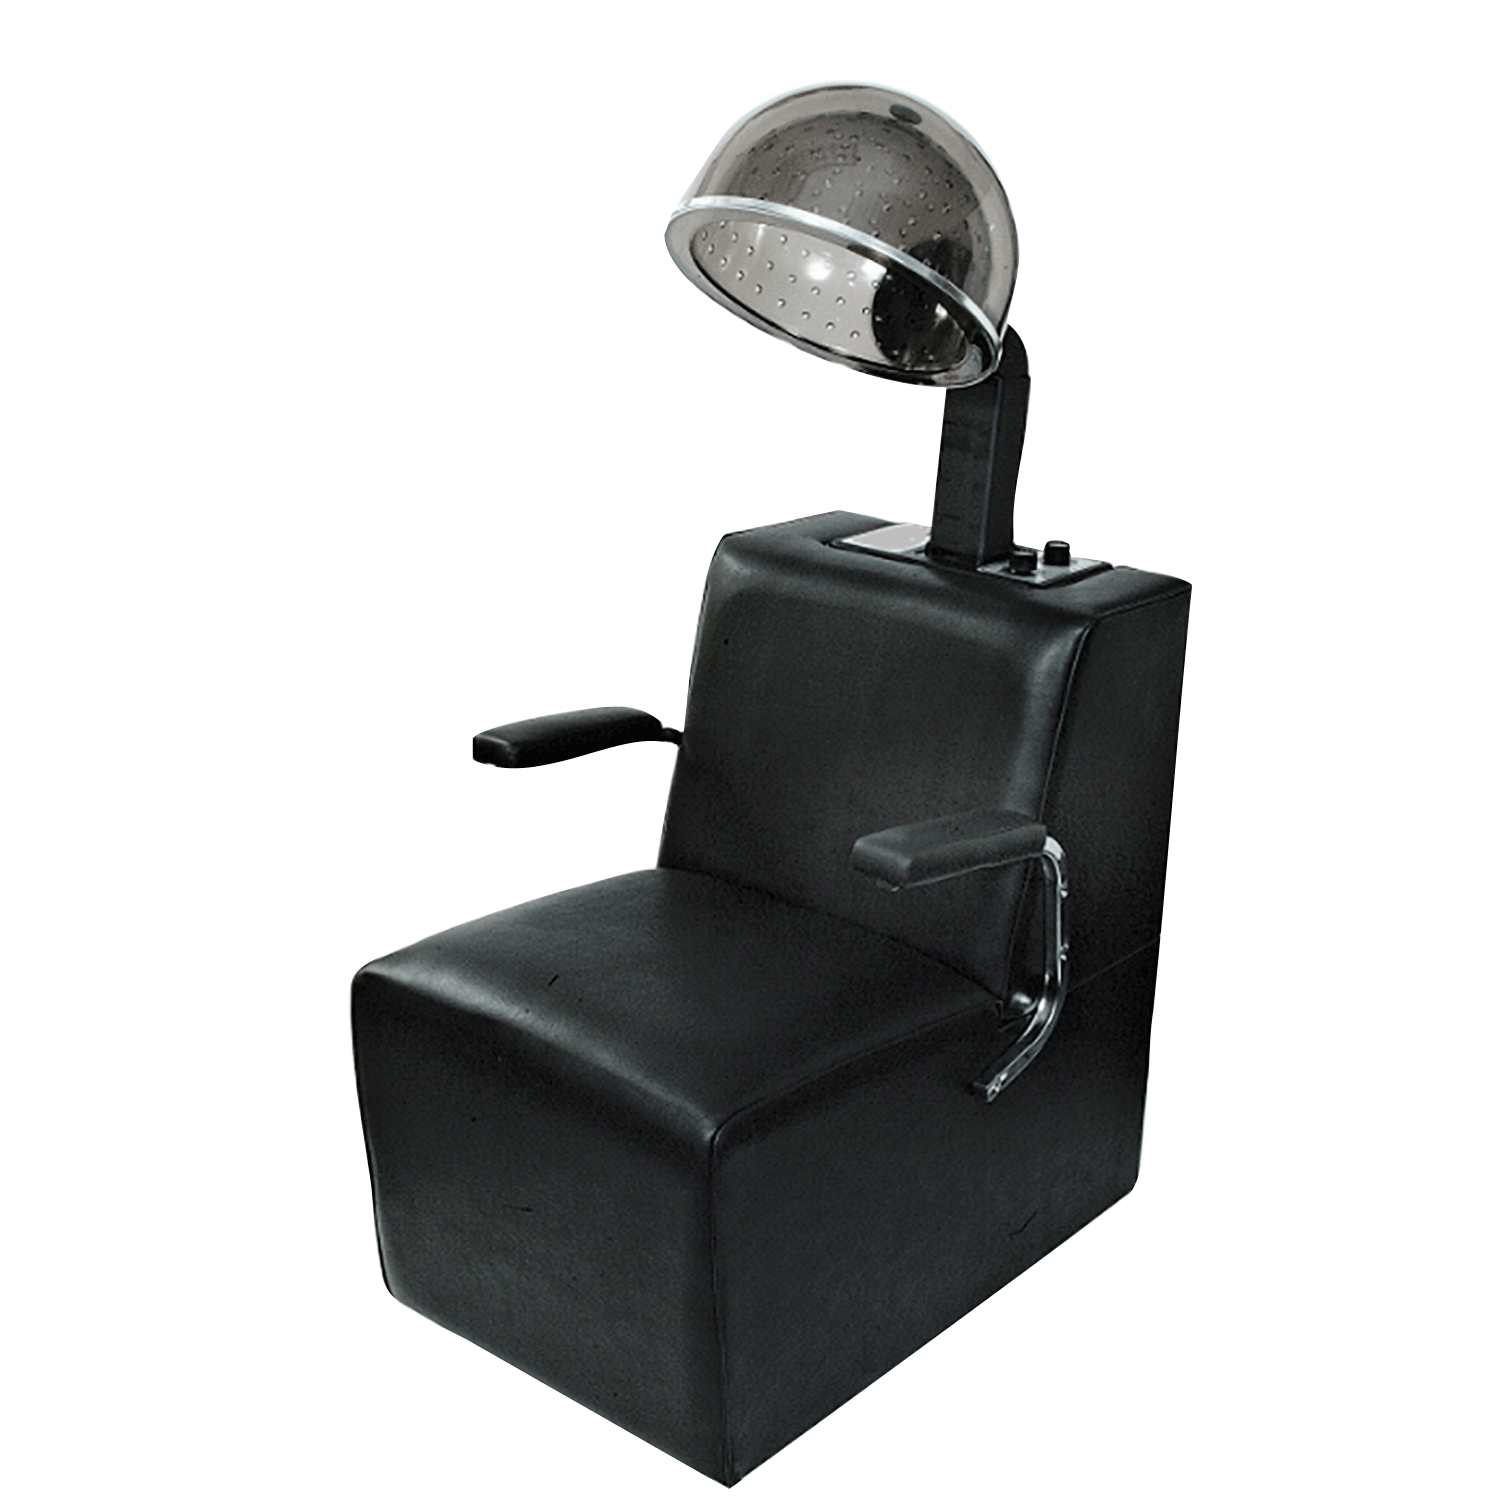 Cosmetology Chair Venus Plus Hair Dryer With Platform Base Dryer Chair